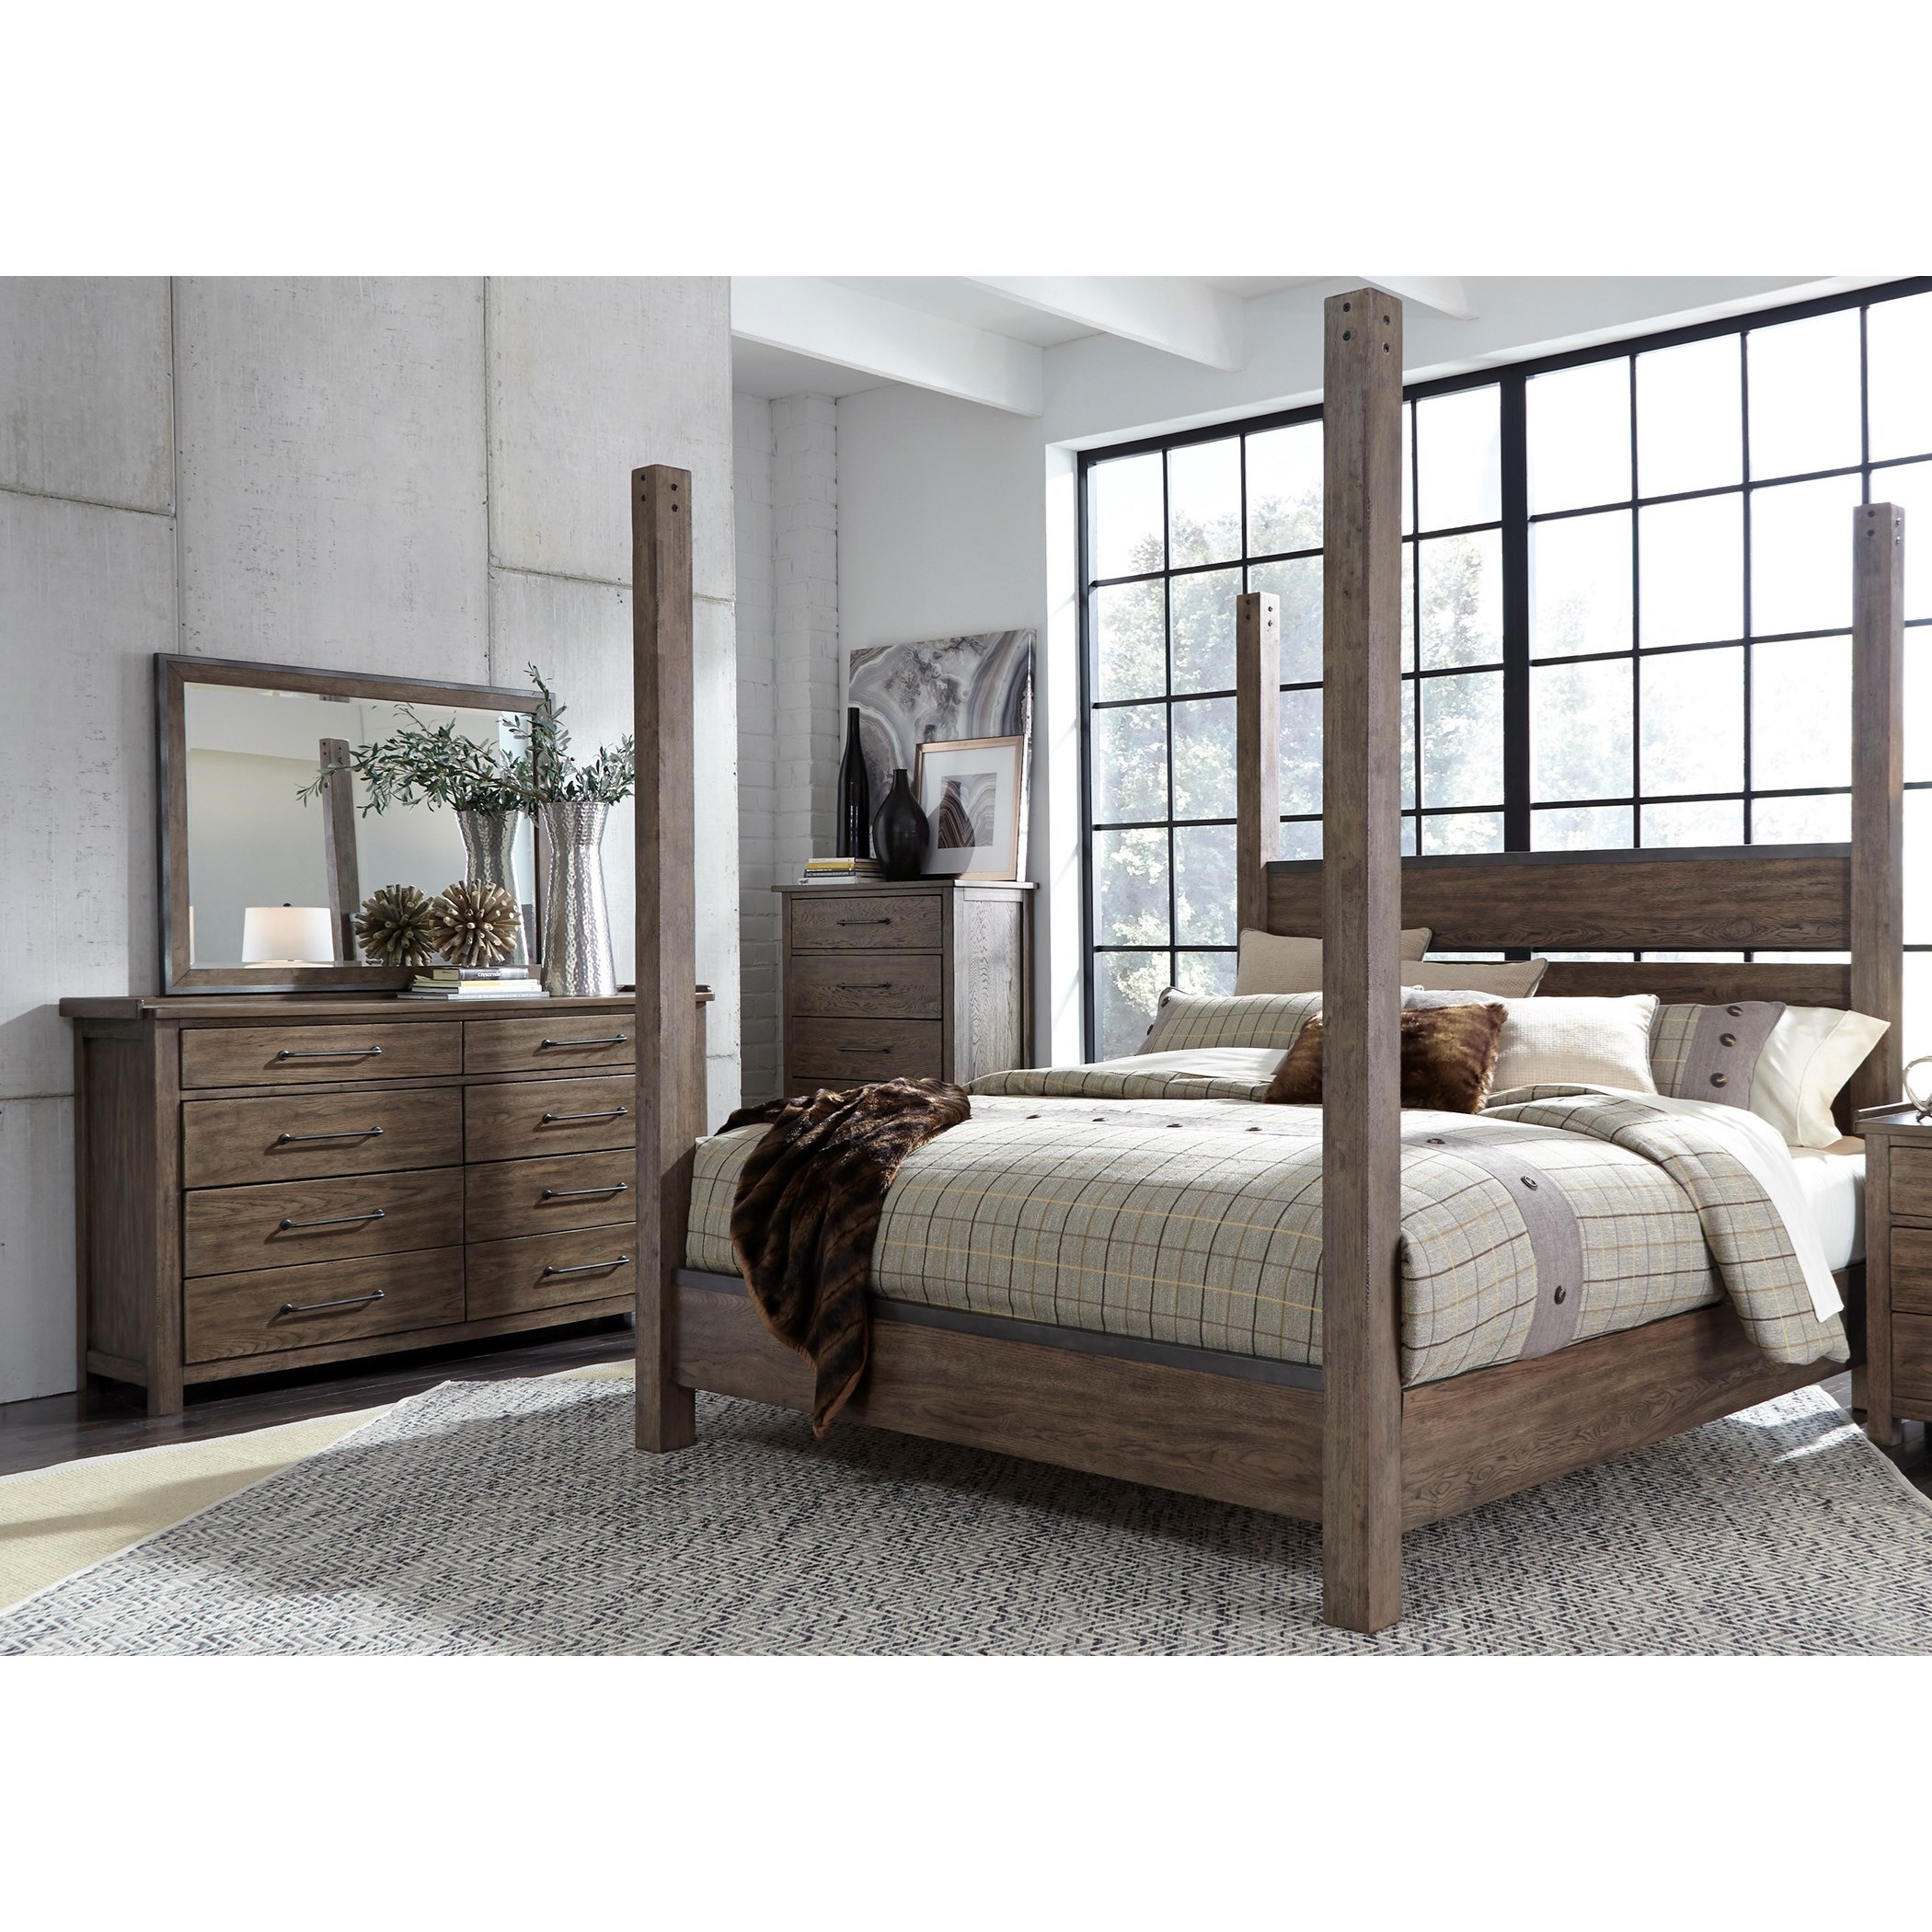 Sonoma Road Queen Bedroom Group by Liberty Furniture at Suburban Furniture